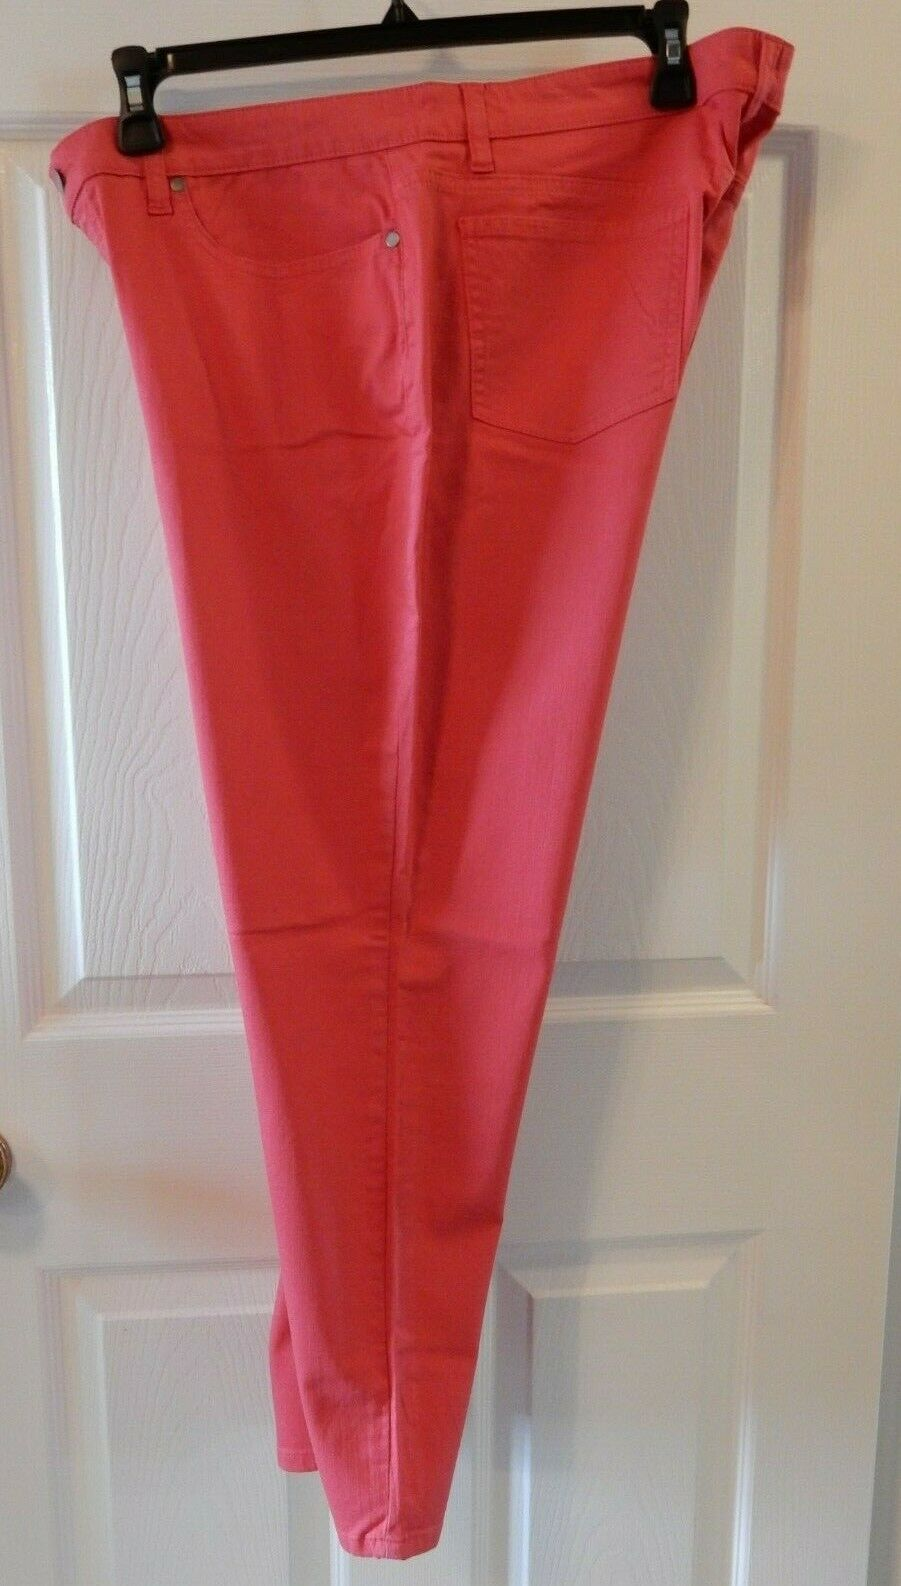 NWT Eileen Fisher SIZE 16 Strawberry Cotton Stretch Twill Skinny Ankle Jean